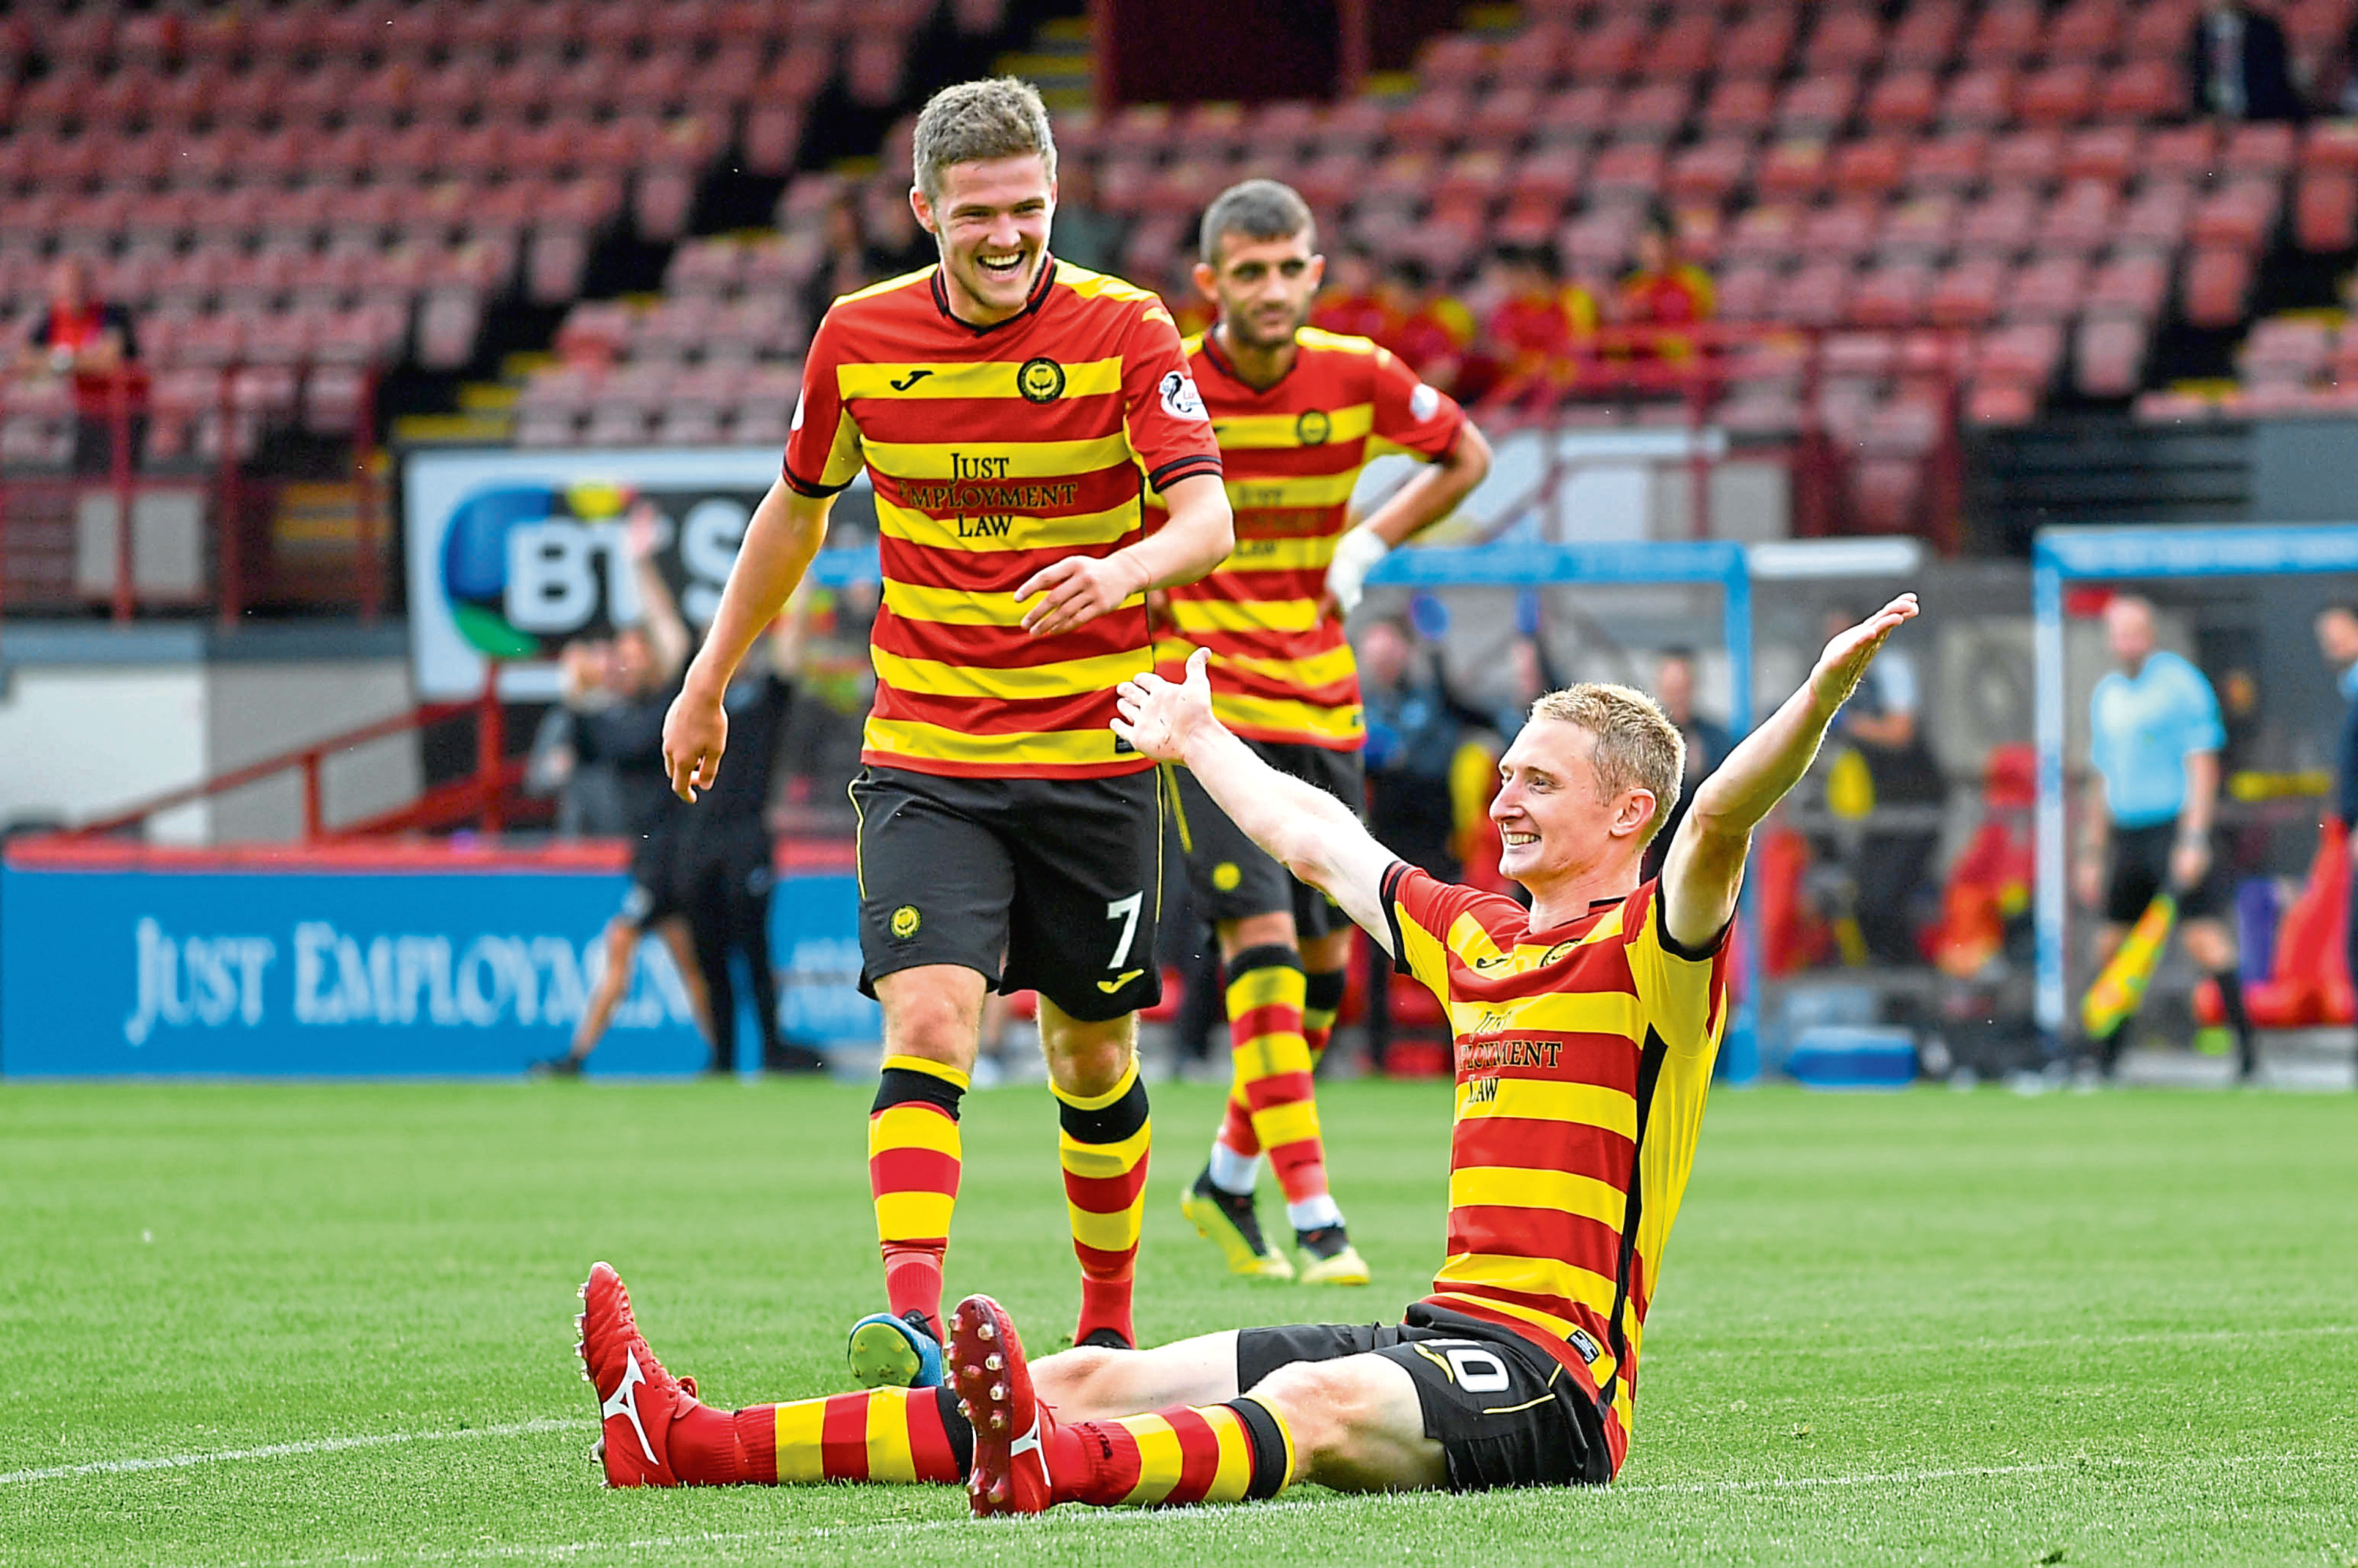 Chris Erskine is joined by Blair Spittal after scoring for Partick Thistle in their recent win over Falkirk at Firhill. United fans will hope the pair aren't celebrating at Tannadice on Saturday.